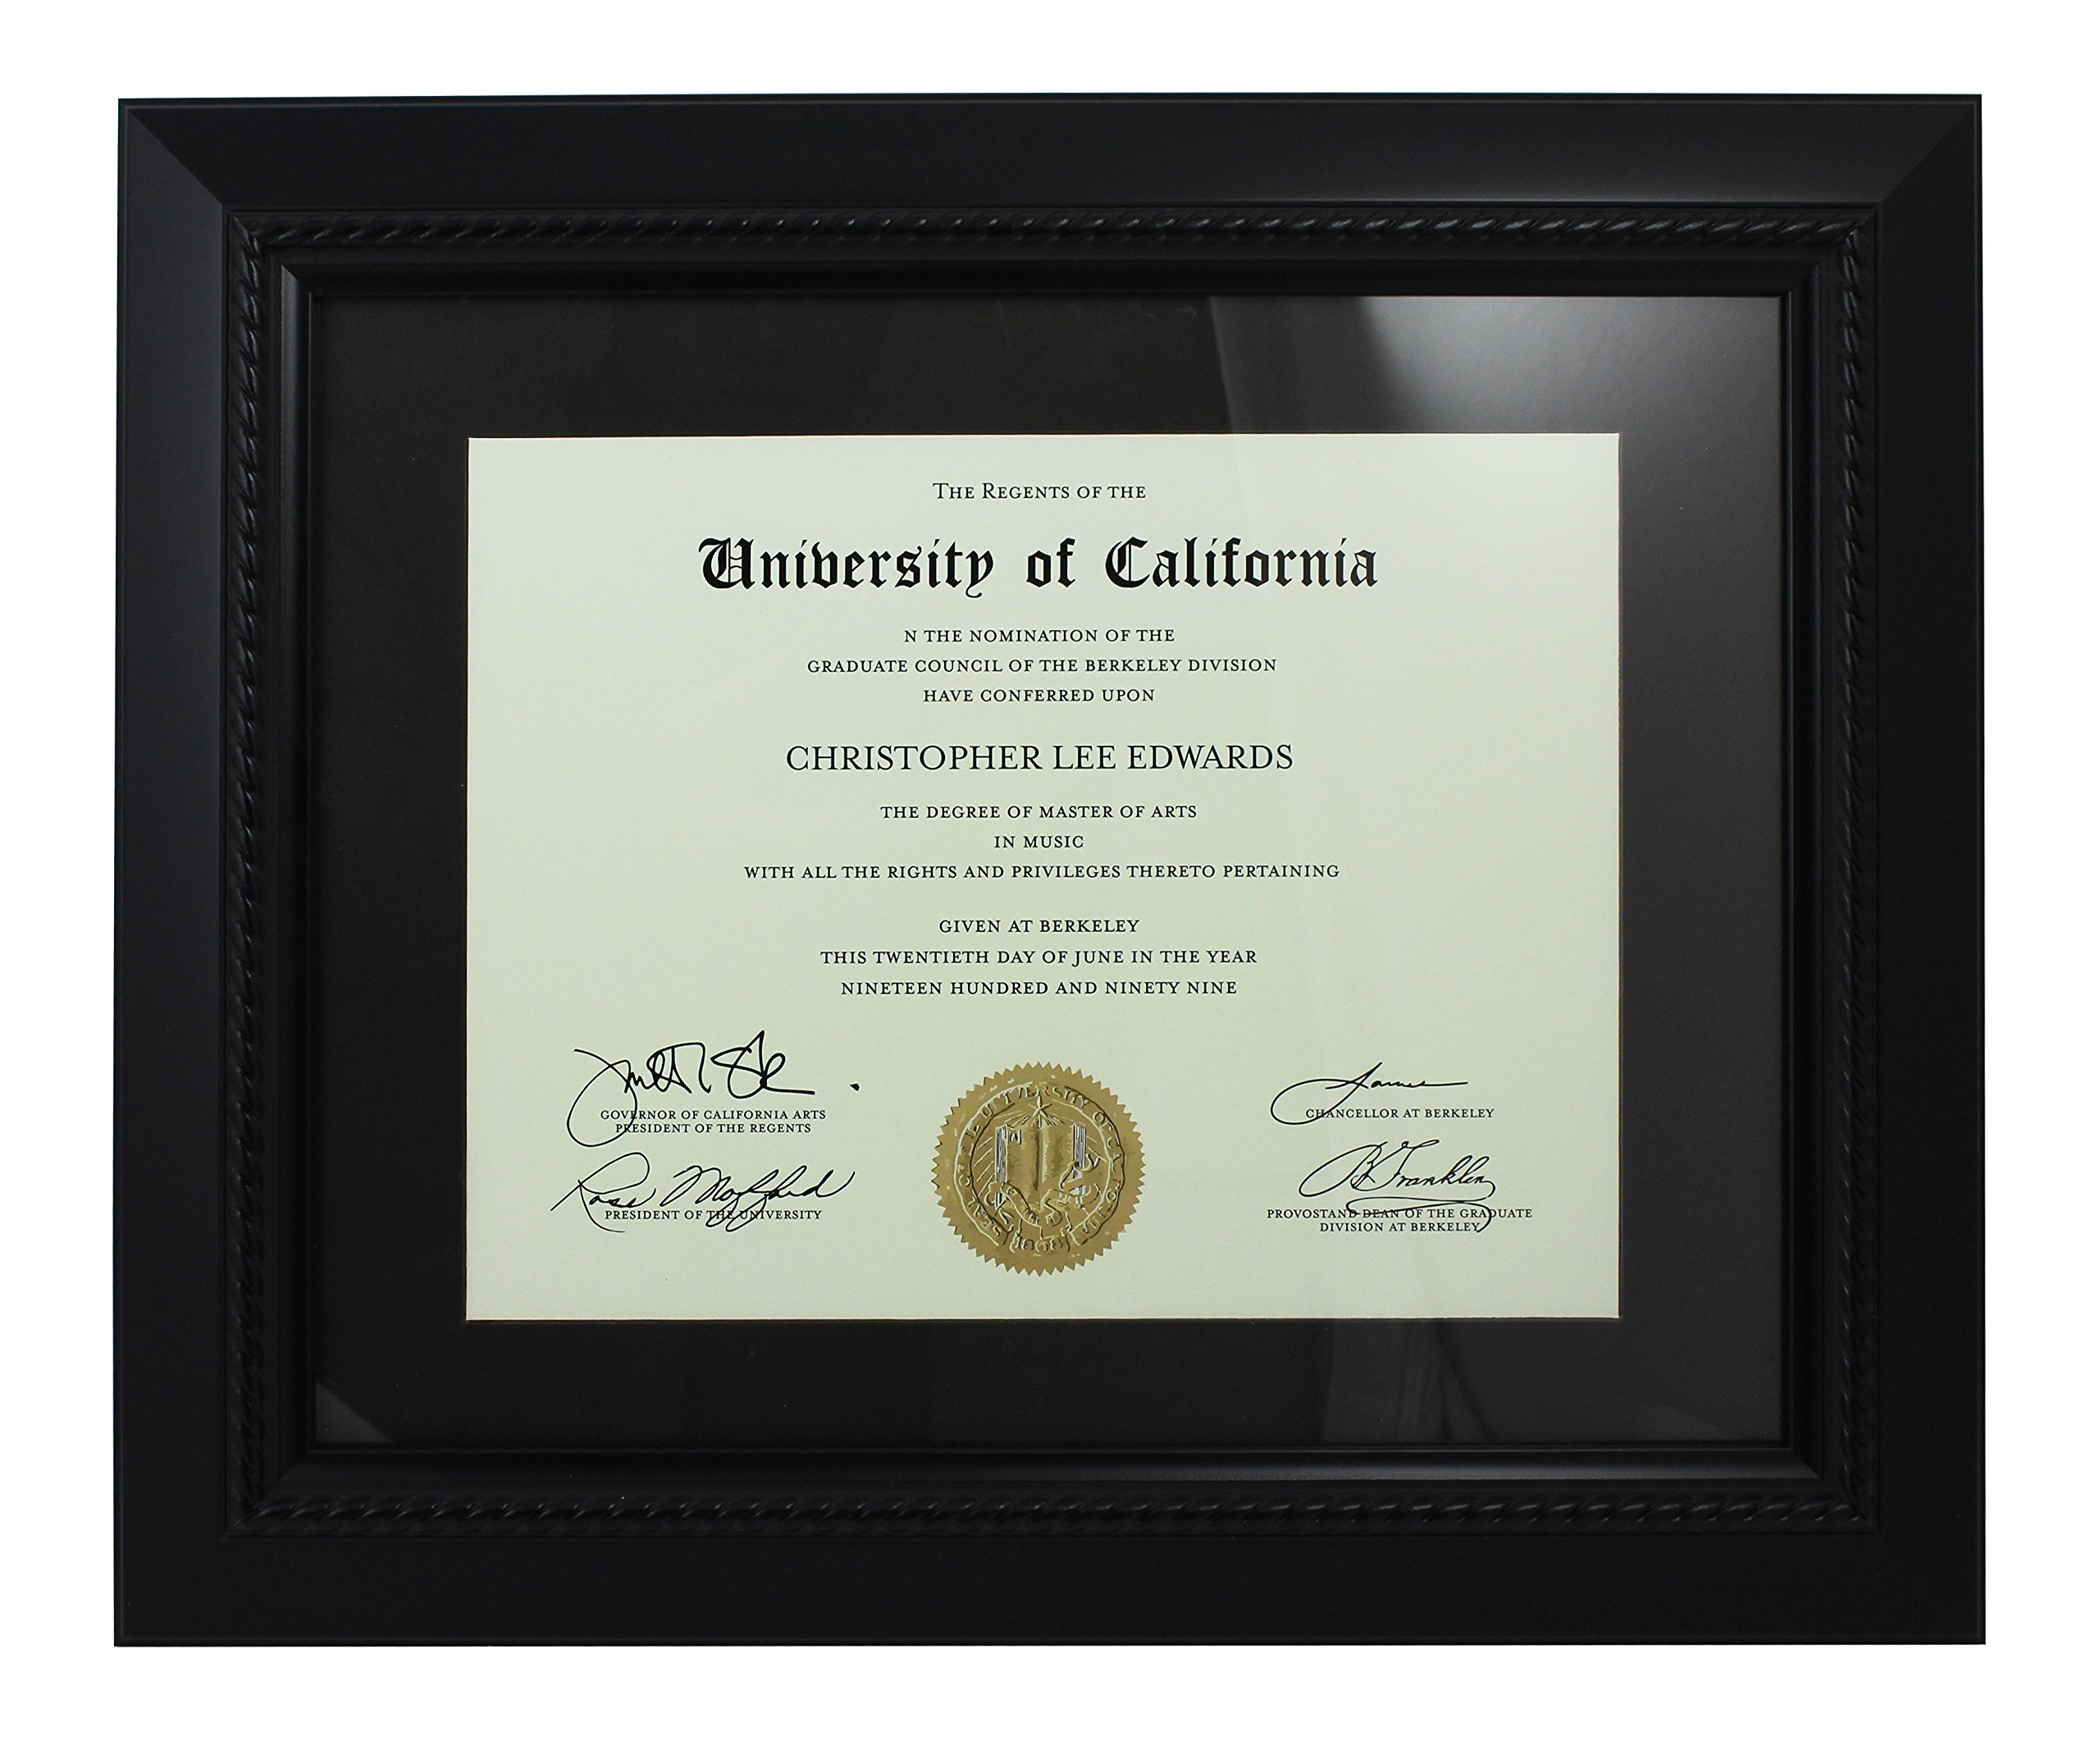 Azzure Home Document Frame - Black with Black Mat Document Frame Made to Display Certificates 8 ½ x 11 Inch Opening to 11 x 14 Inch Frame - Document Frame, Certificate Frame, University Diploma Frame by Azzure Home